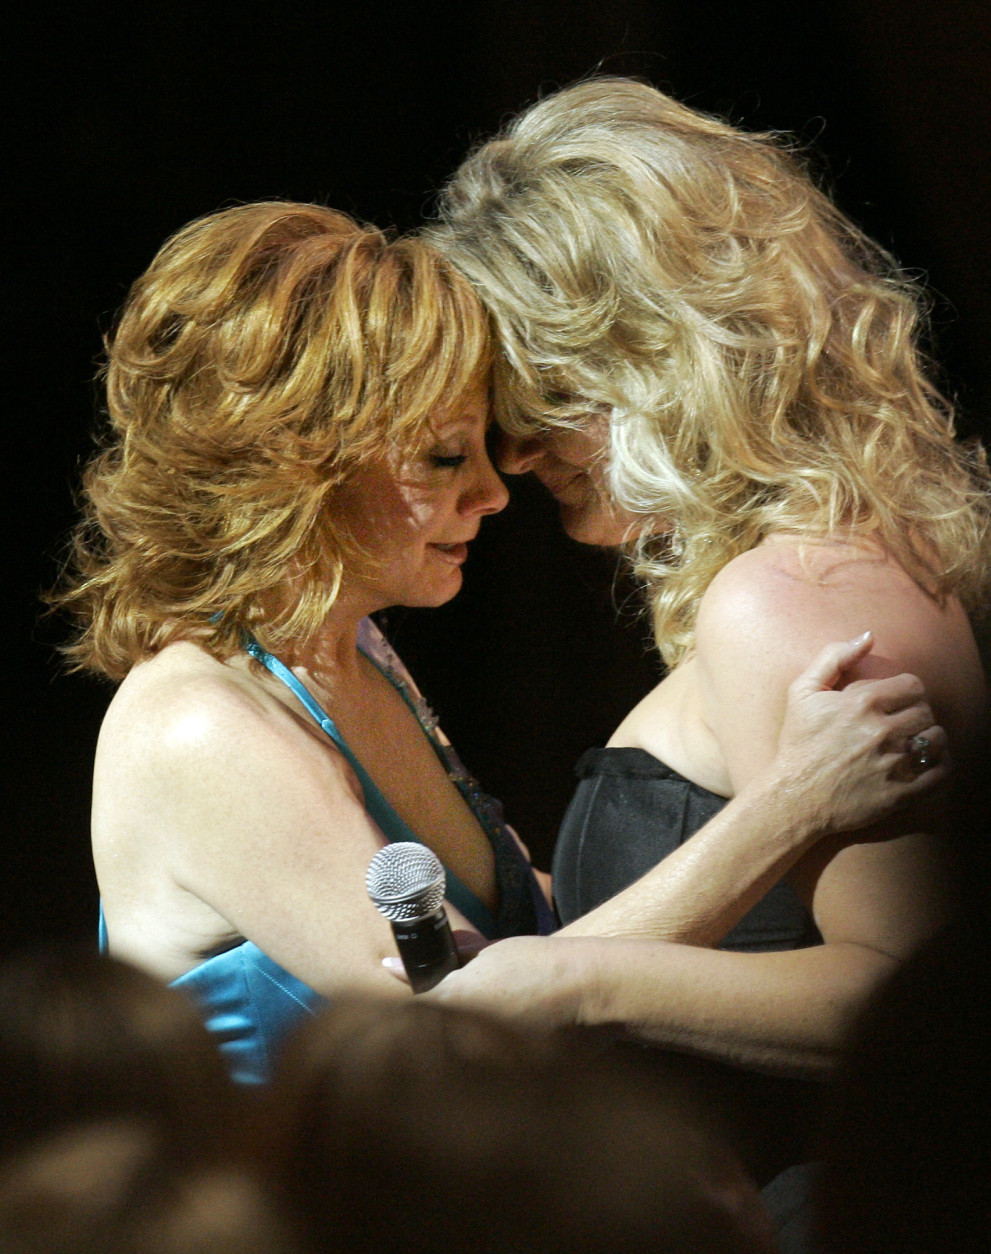 "Reba McEntire, left, hugs Trisha Yearwood after Yearwood performed ""If I Had Only Known"" during taping of ""CMT Giants"" honoring Reba McEntire, Thursday night, Oct. 26, 2006, in the Hollywood section of Los Angeles. McEntire originally recorded the song as a tribute to band members that were killed in a plane crash. The show is scheduled to air on Saturday, Nov. 18. (AP Photo/Mark J. Terrill)"